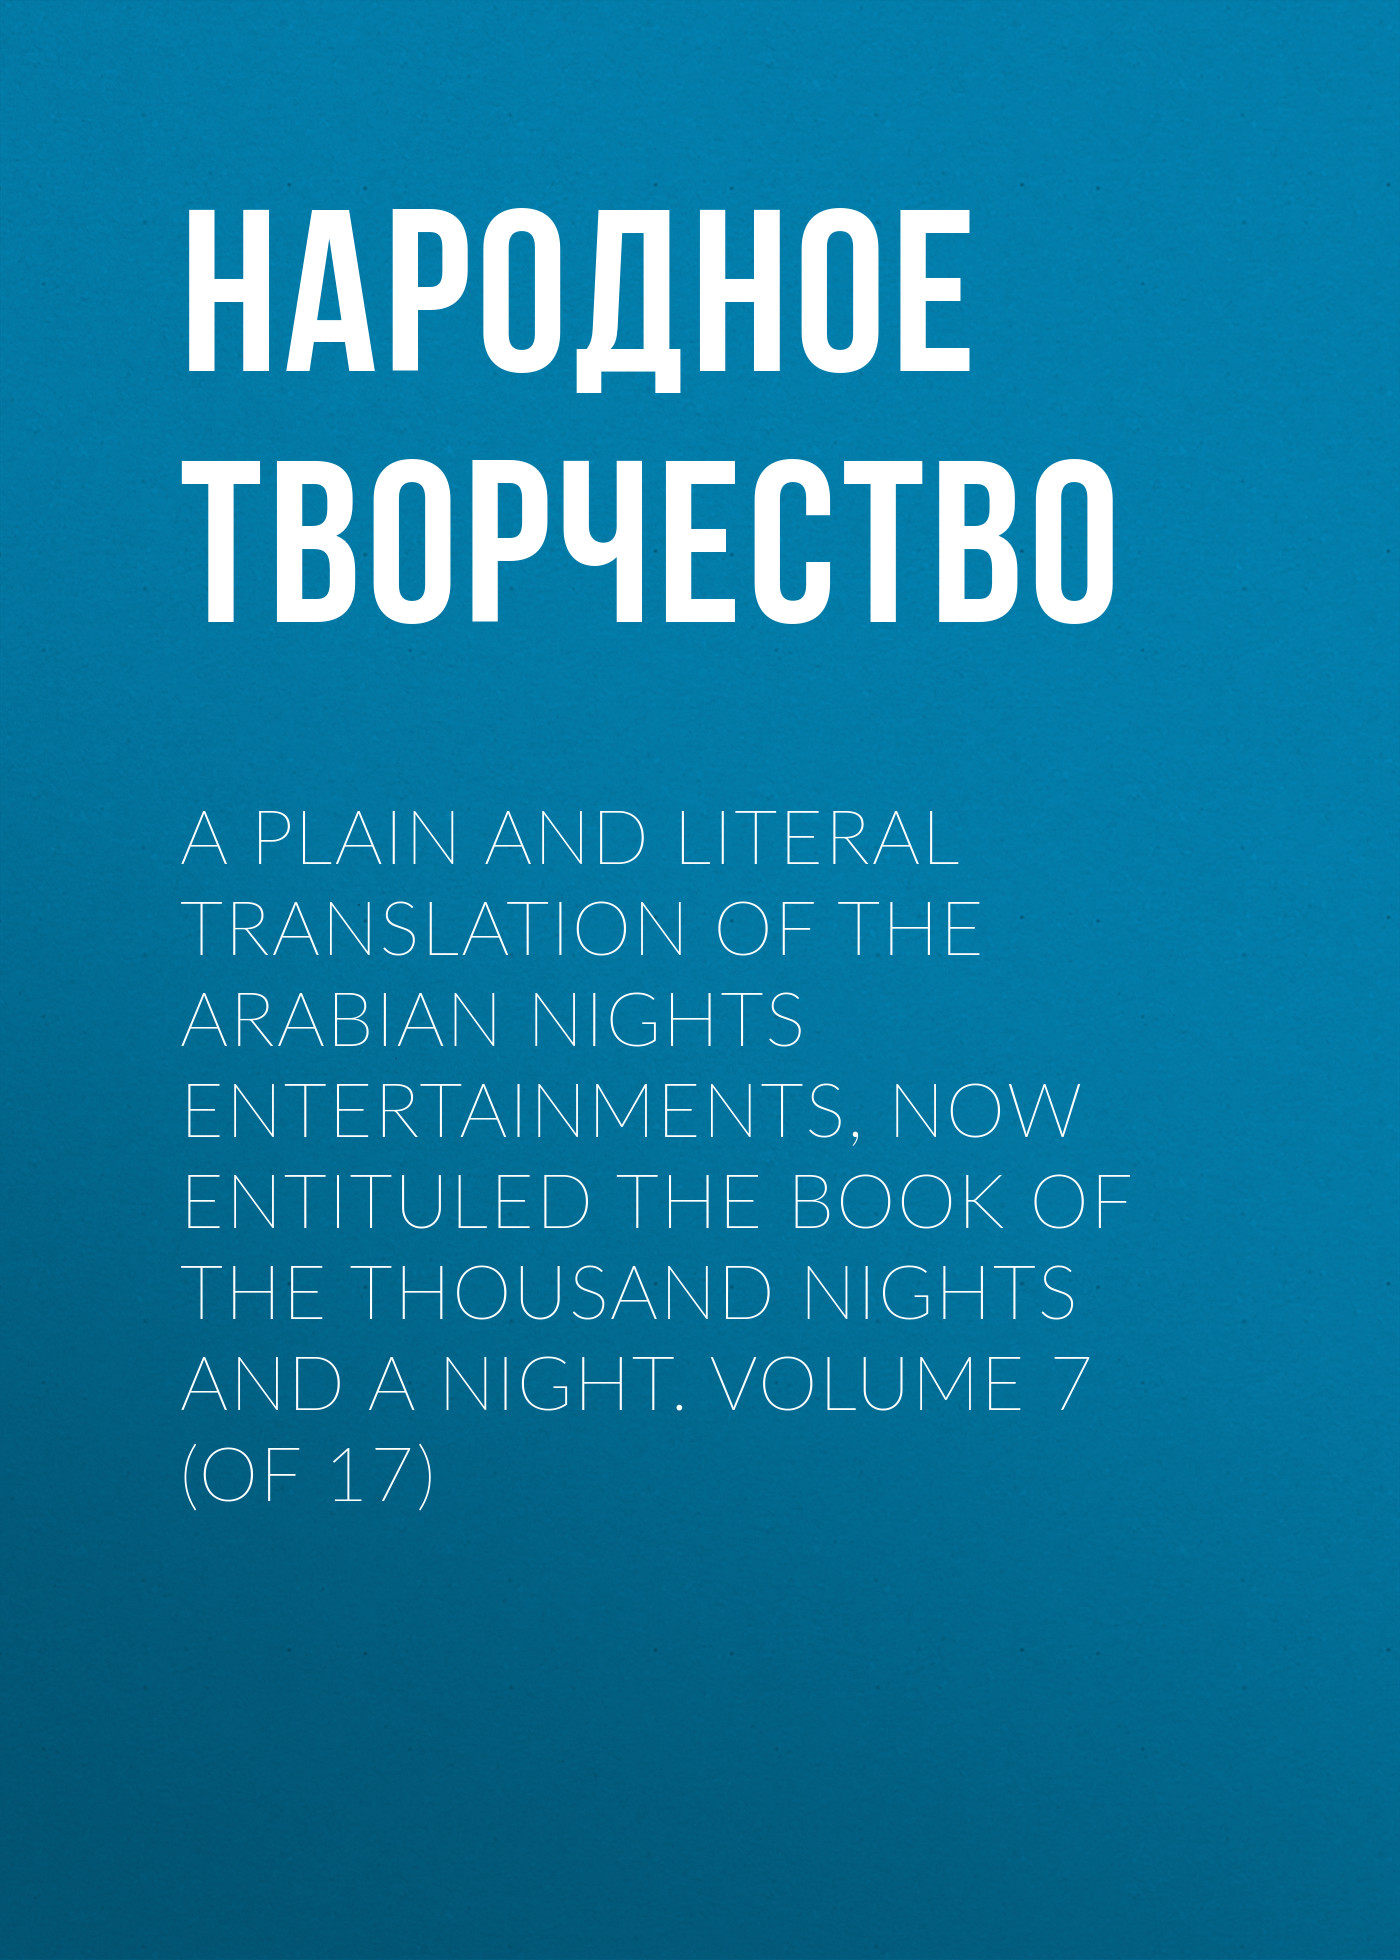 Народное творчество A plain and literal translation of the Arabian nights entertainments, now entituled The Book of the Thousand Nights and a Night. Volume 7 (of 17)